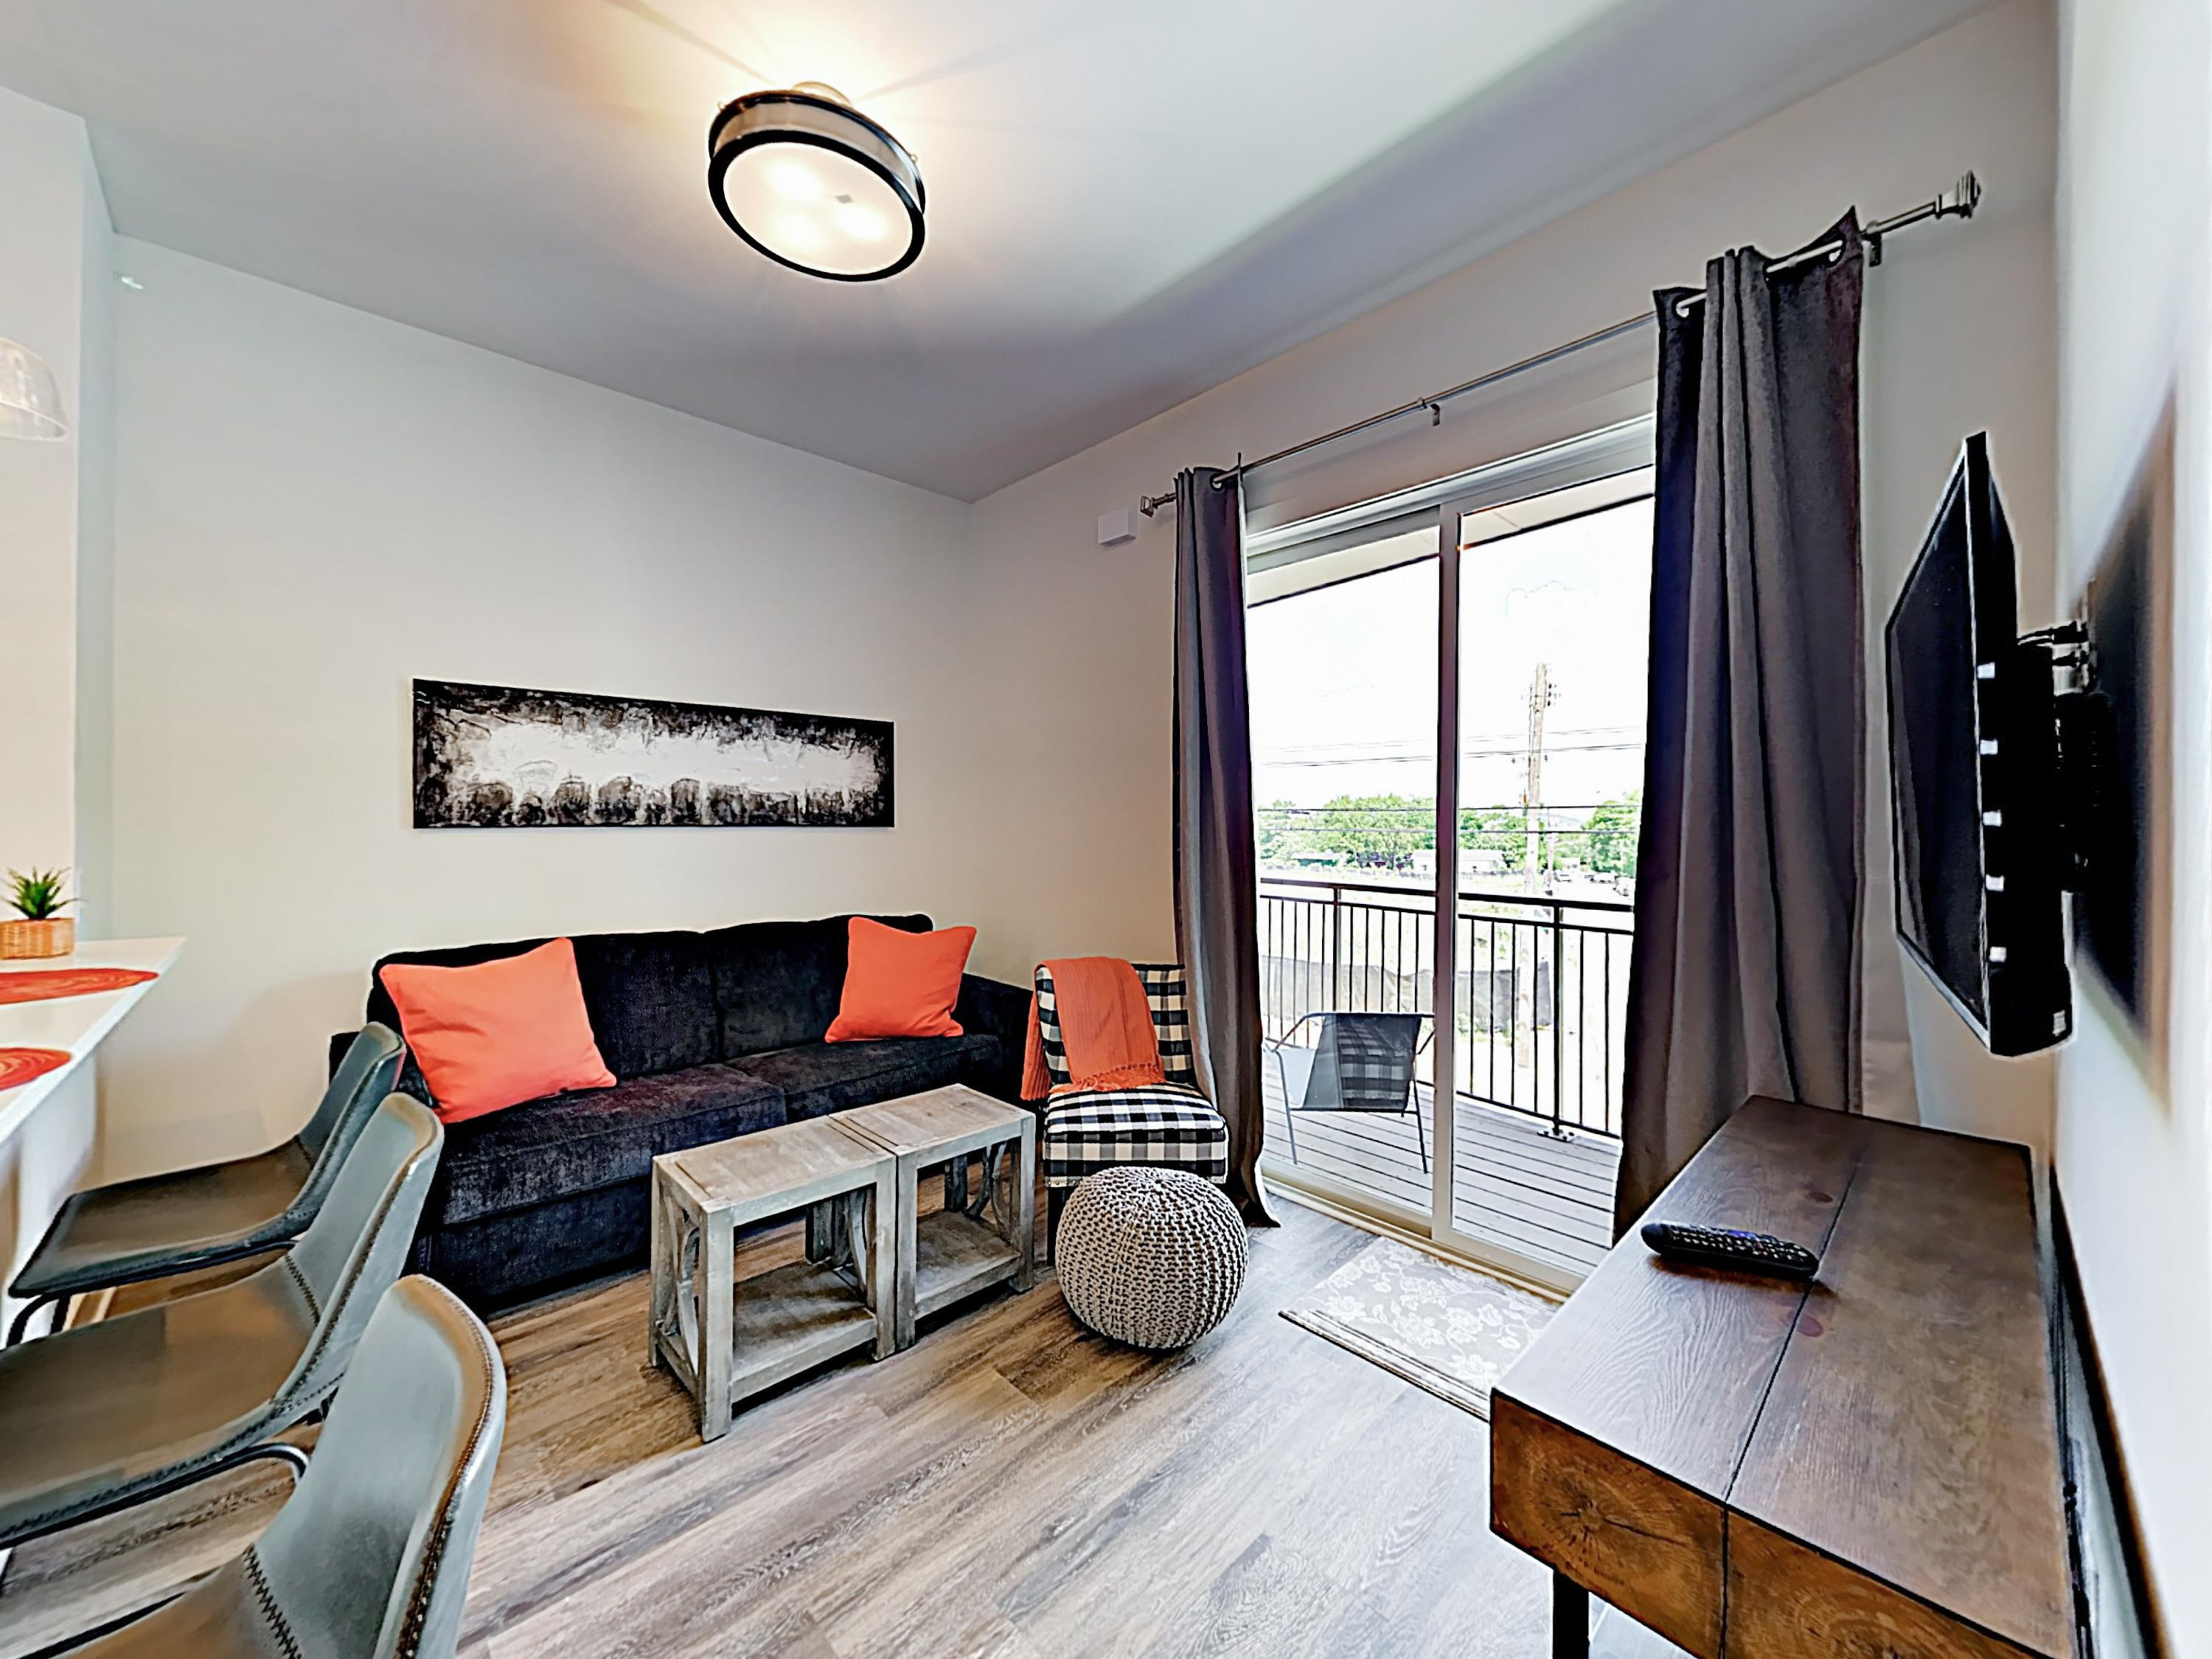 This apartment is professionally managed by TurnKey Vacation Rentals.